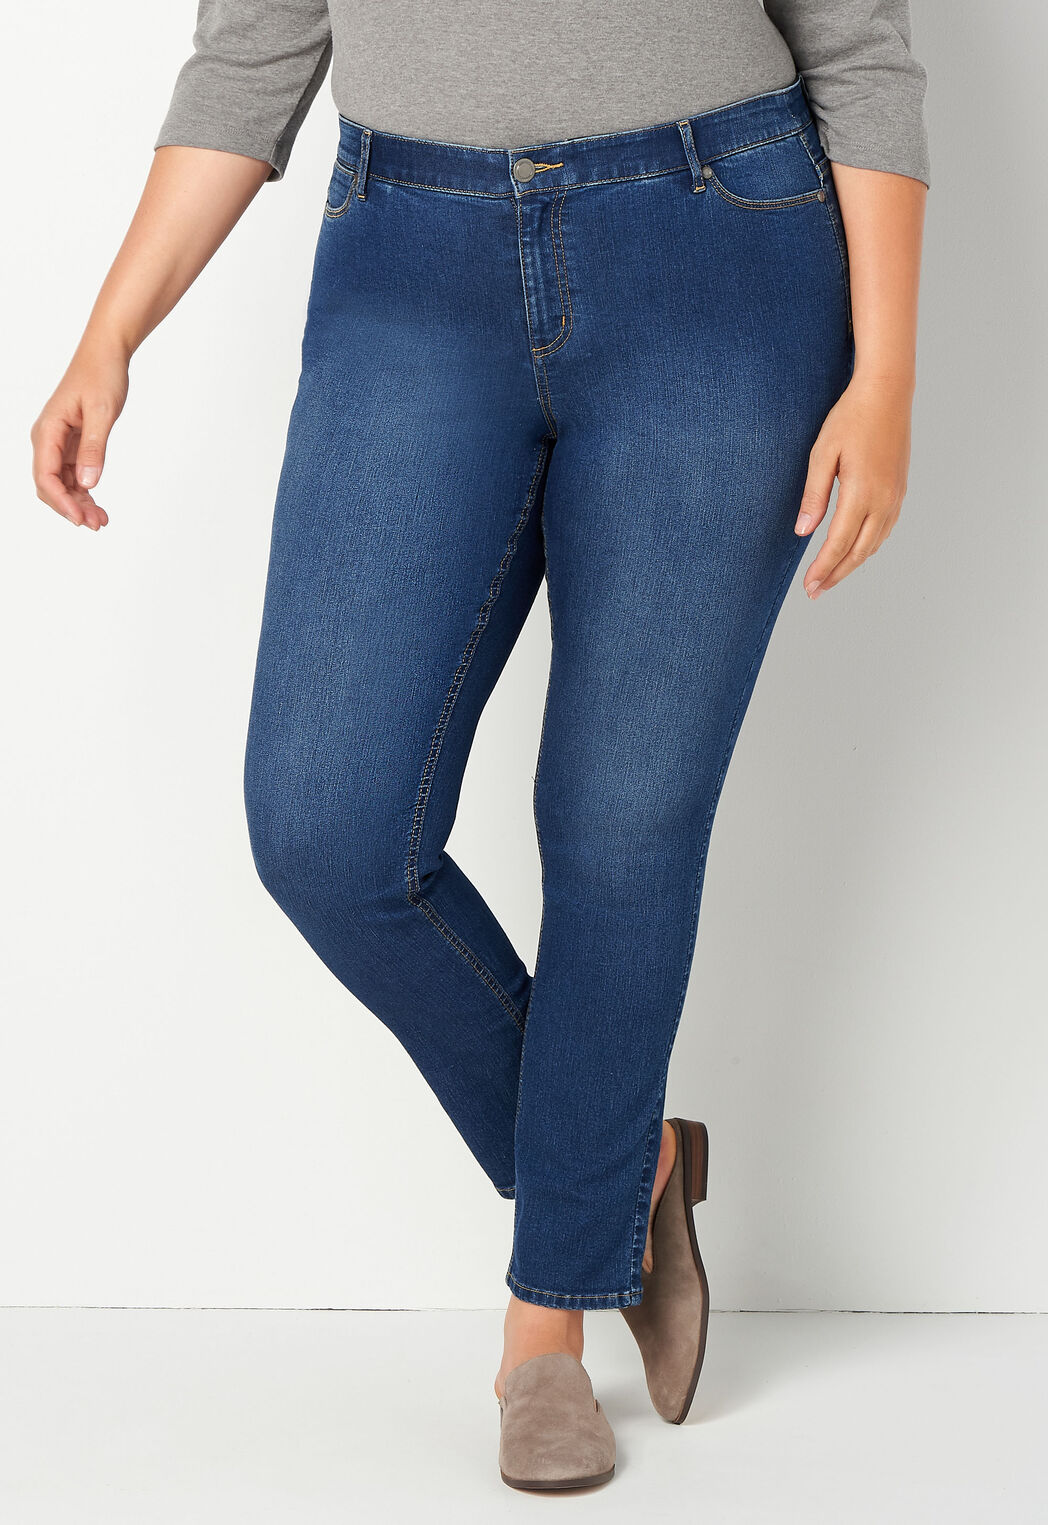 d6079595197 Women s Refined Everyday Denim Tapered Leg Plus Size Pant Petite from